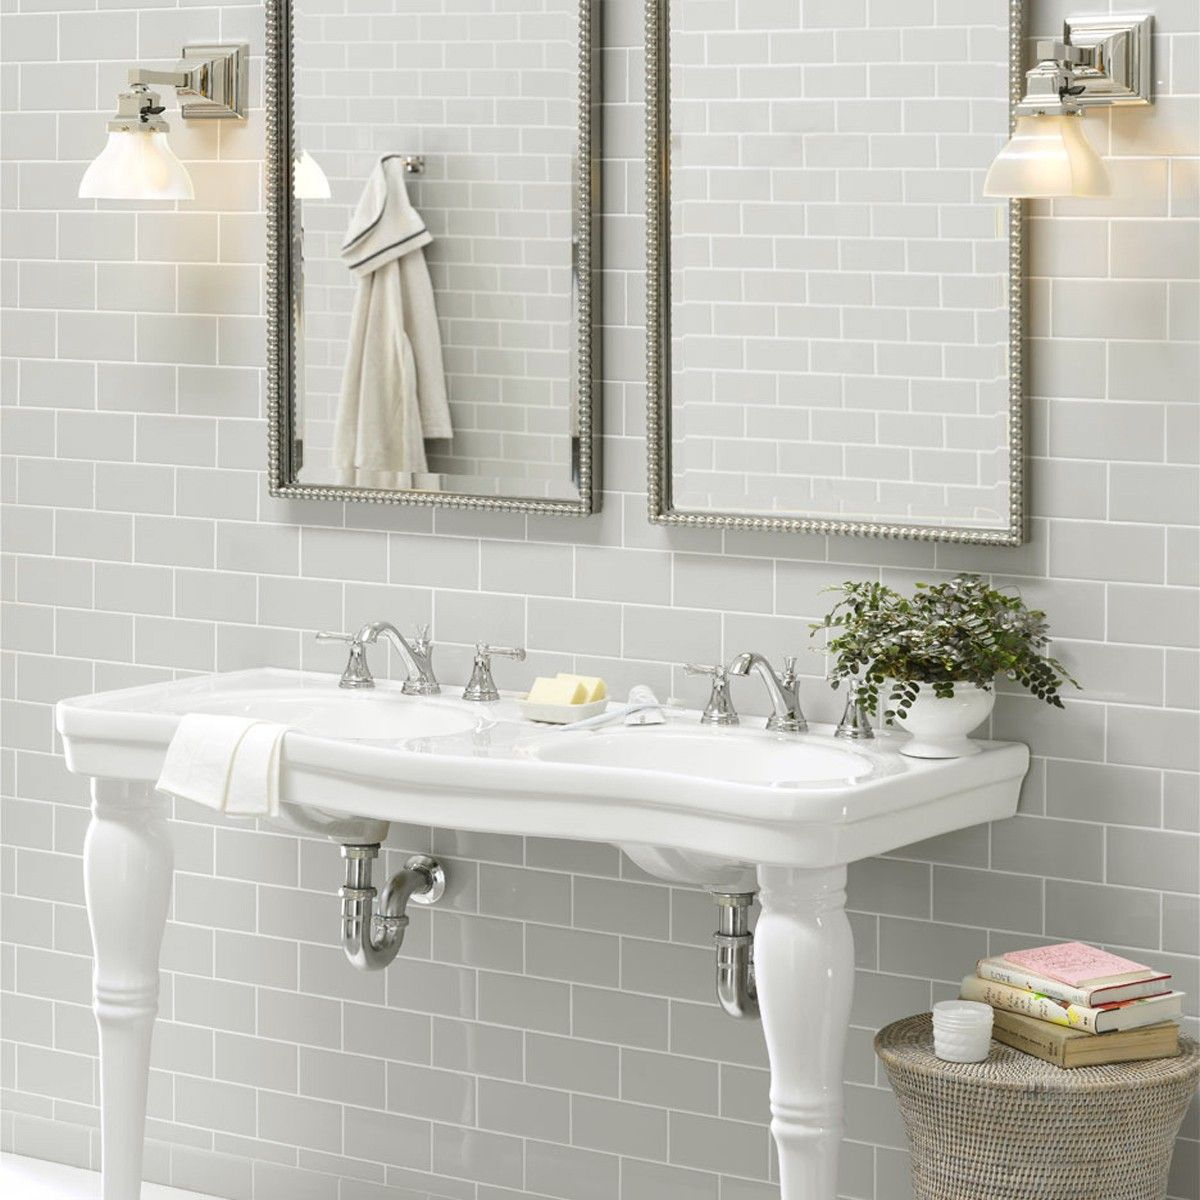 Lastest Shower W Floor To Ceiling Glass! Window Above And Floating Vanity Love It  SOUTHERN WING BATHROOM Grey Floor Tile That Continues Up The Wall Of The